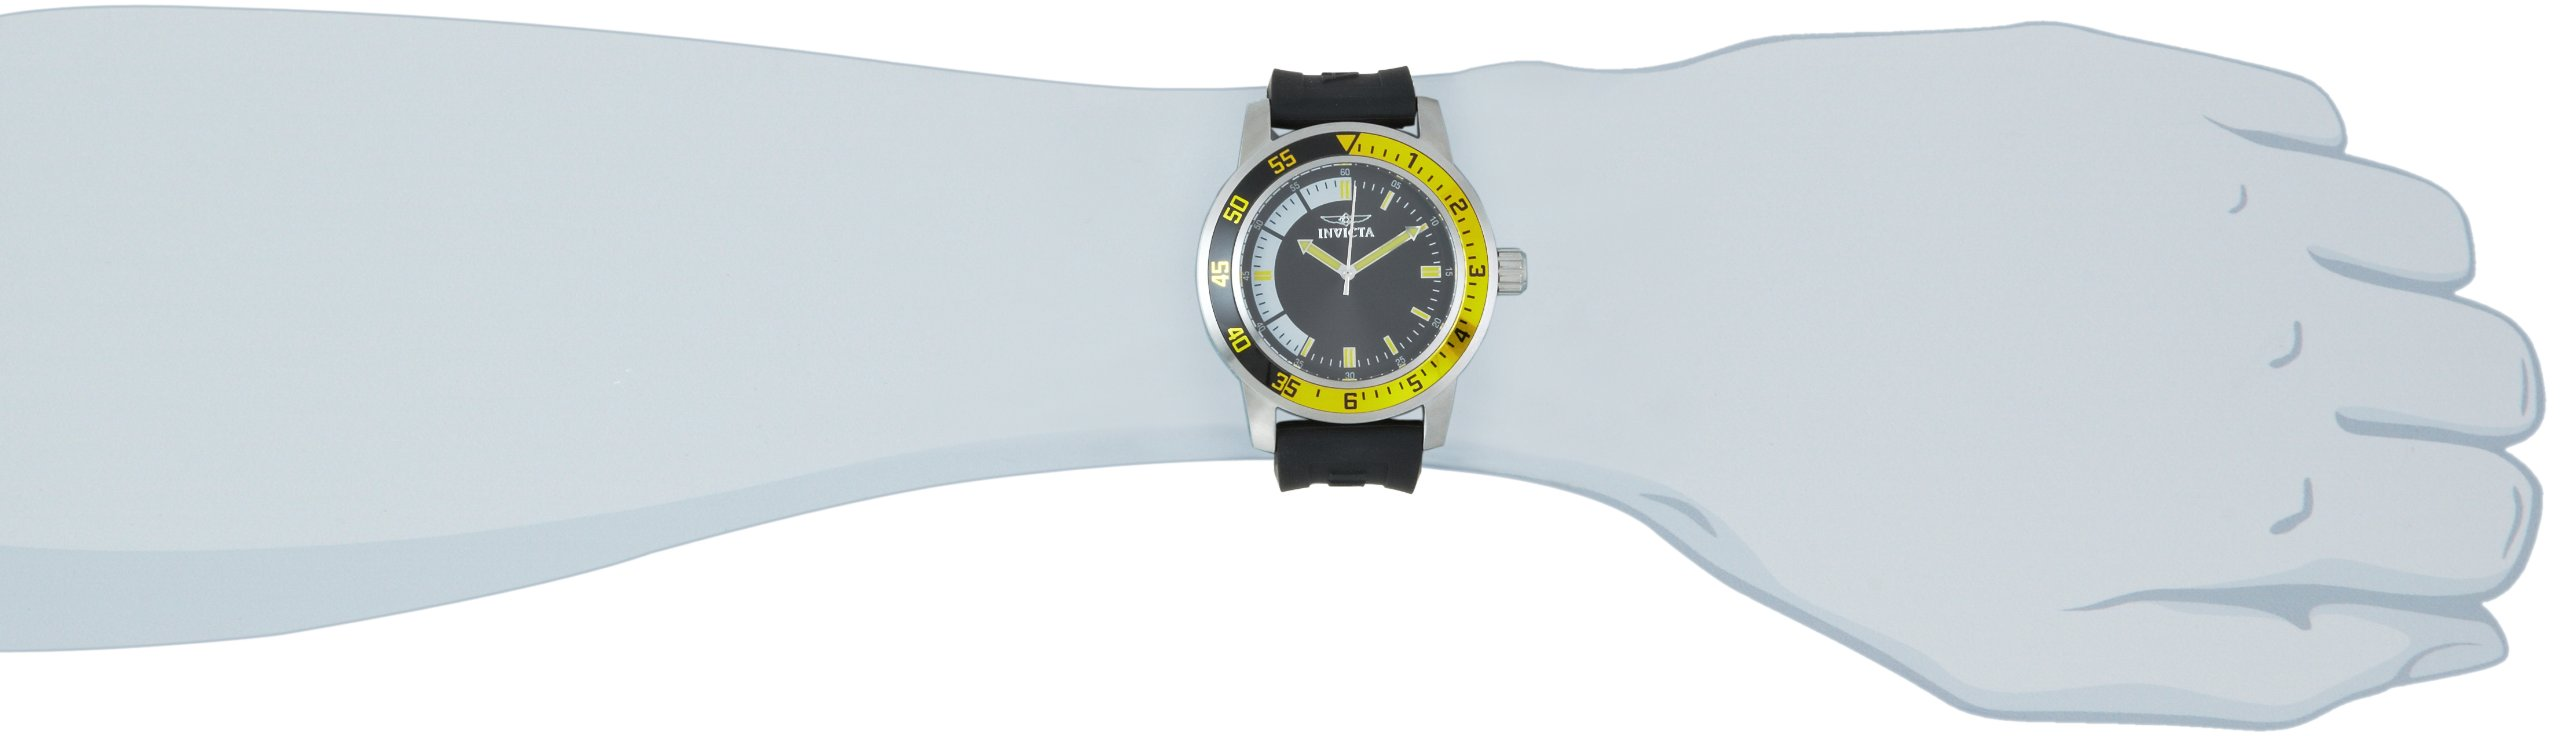 """Invicta Men's 12846 """"Specialty"""" Stainless Steel Watch with Black Band"""